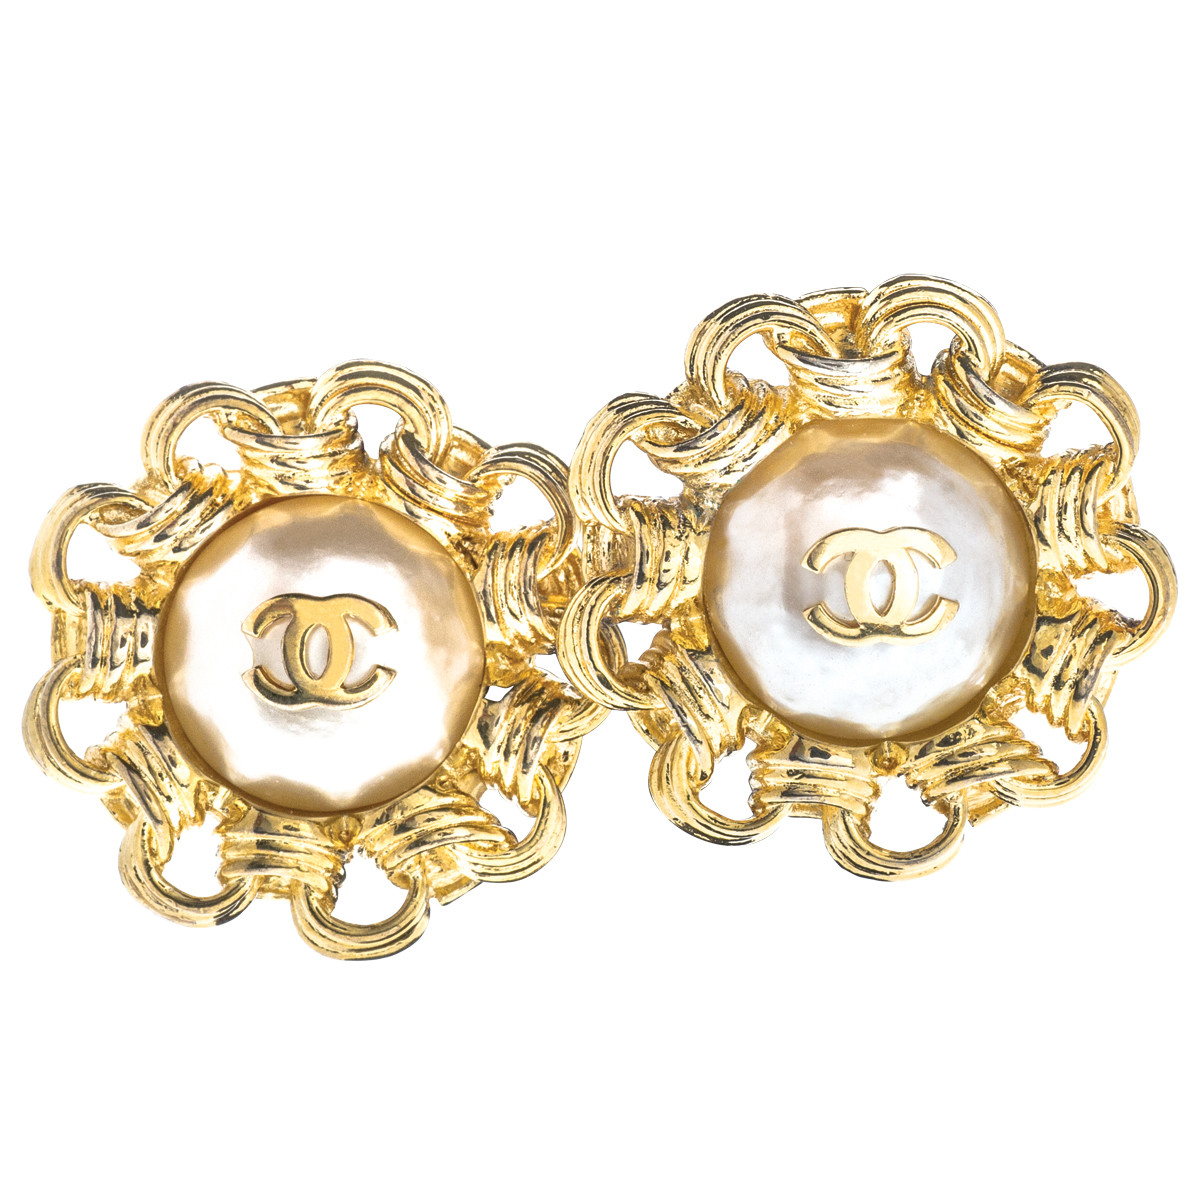 Vintage Chanel Mabe Pearl Chain Link Earrings